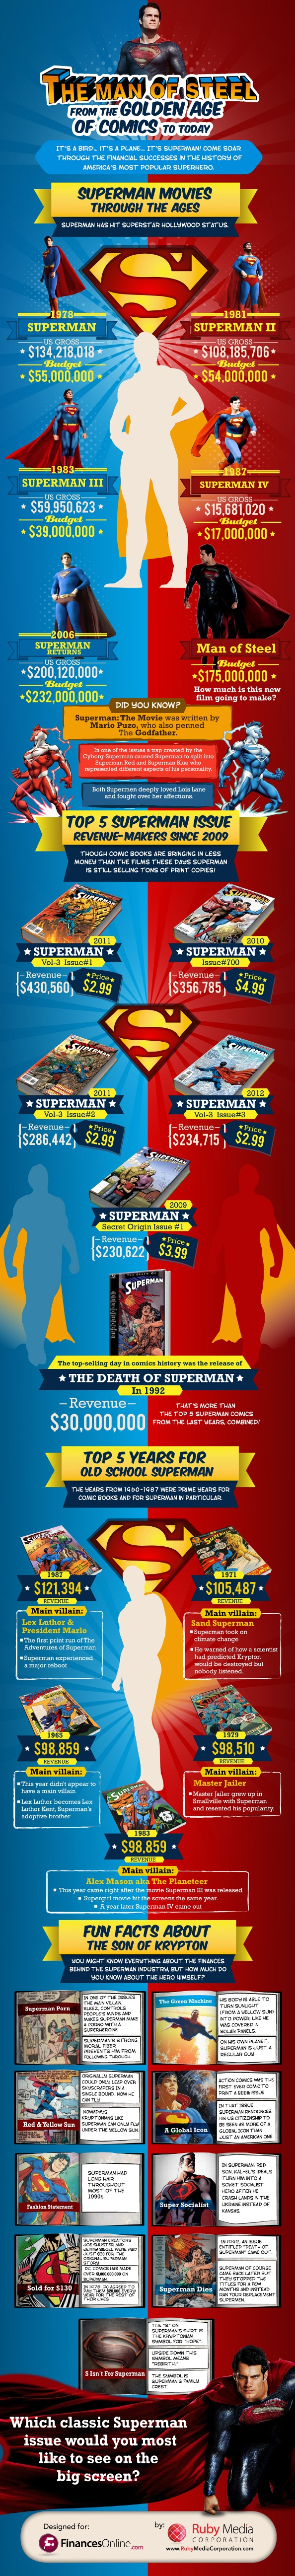 superman_infographic_manofsteel